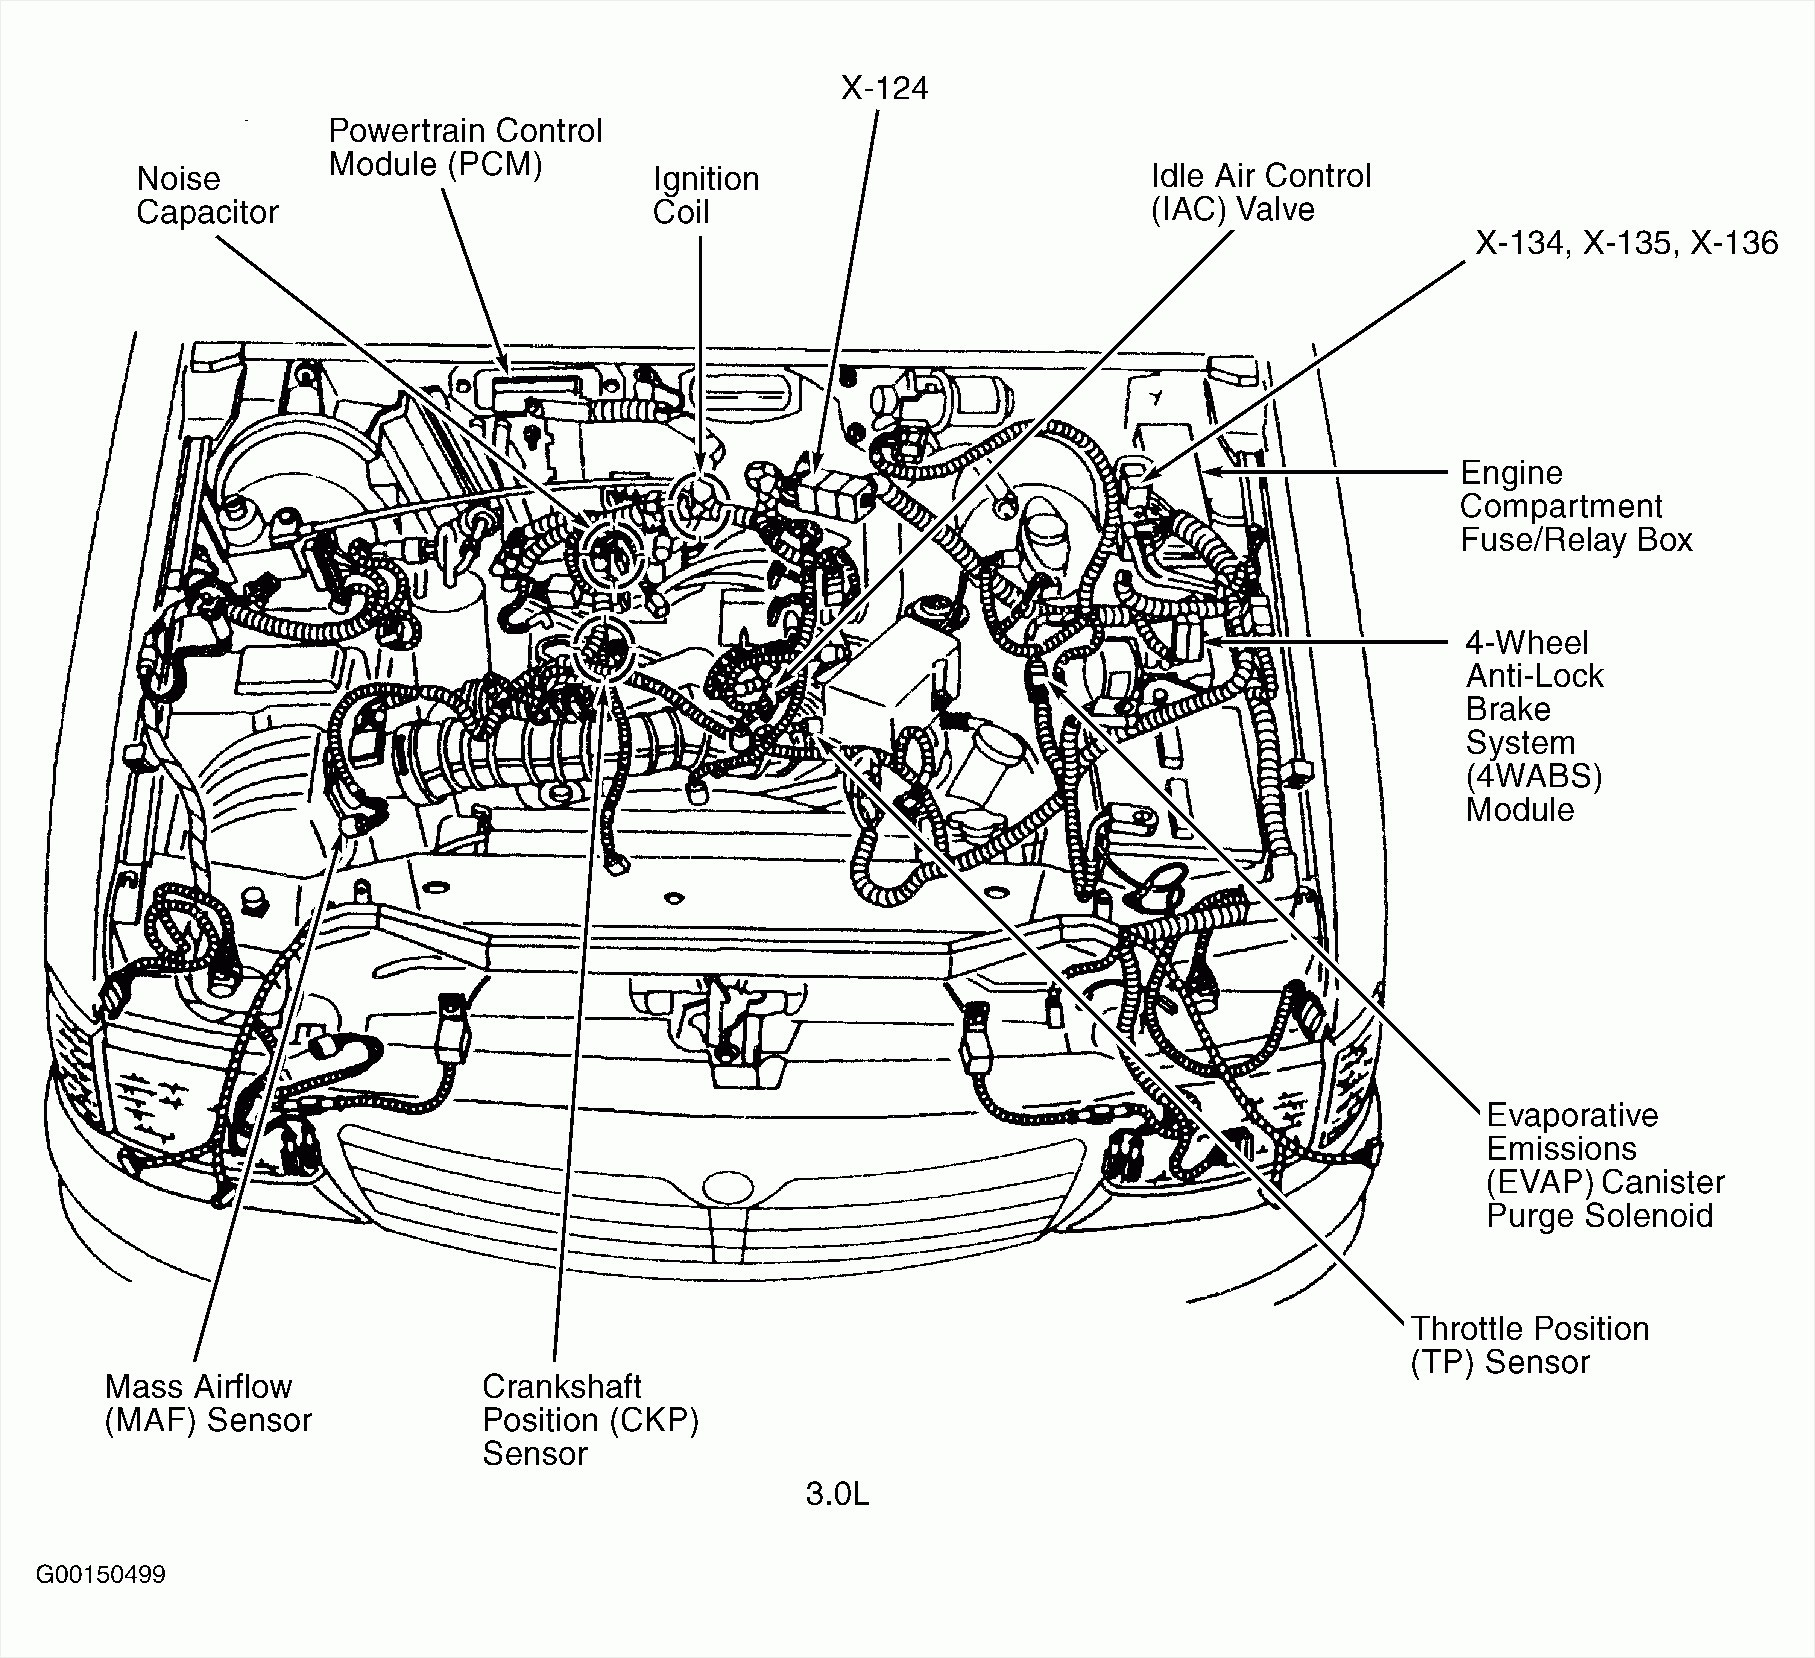 1999 Mustang Ignition Wiring Diagram Manual Of 1993 Ford Ranger Engine Trusted Rh Dafpods Co